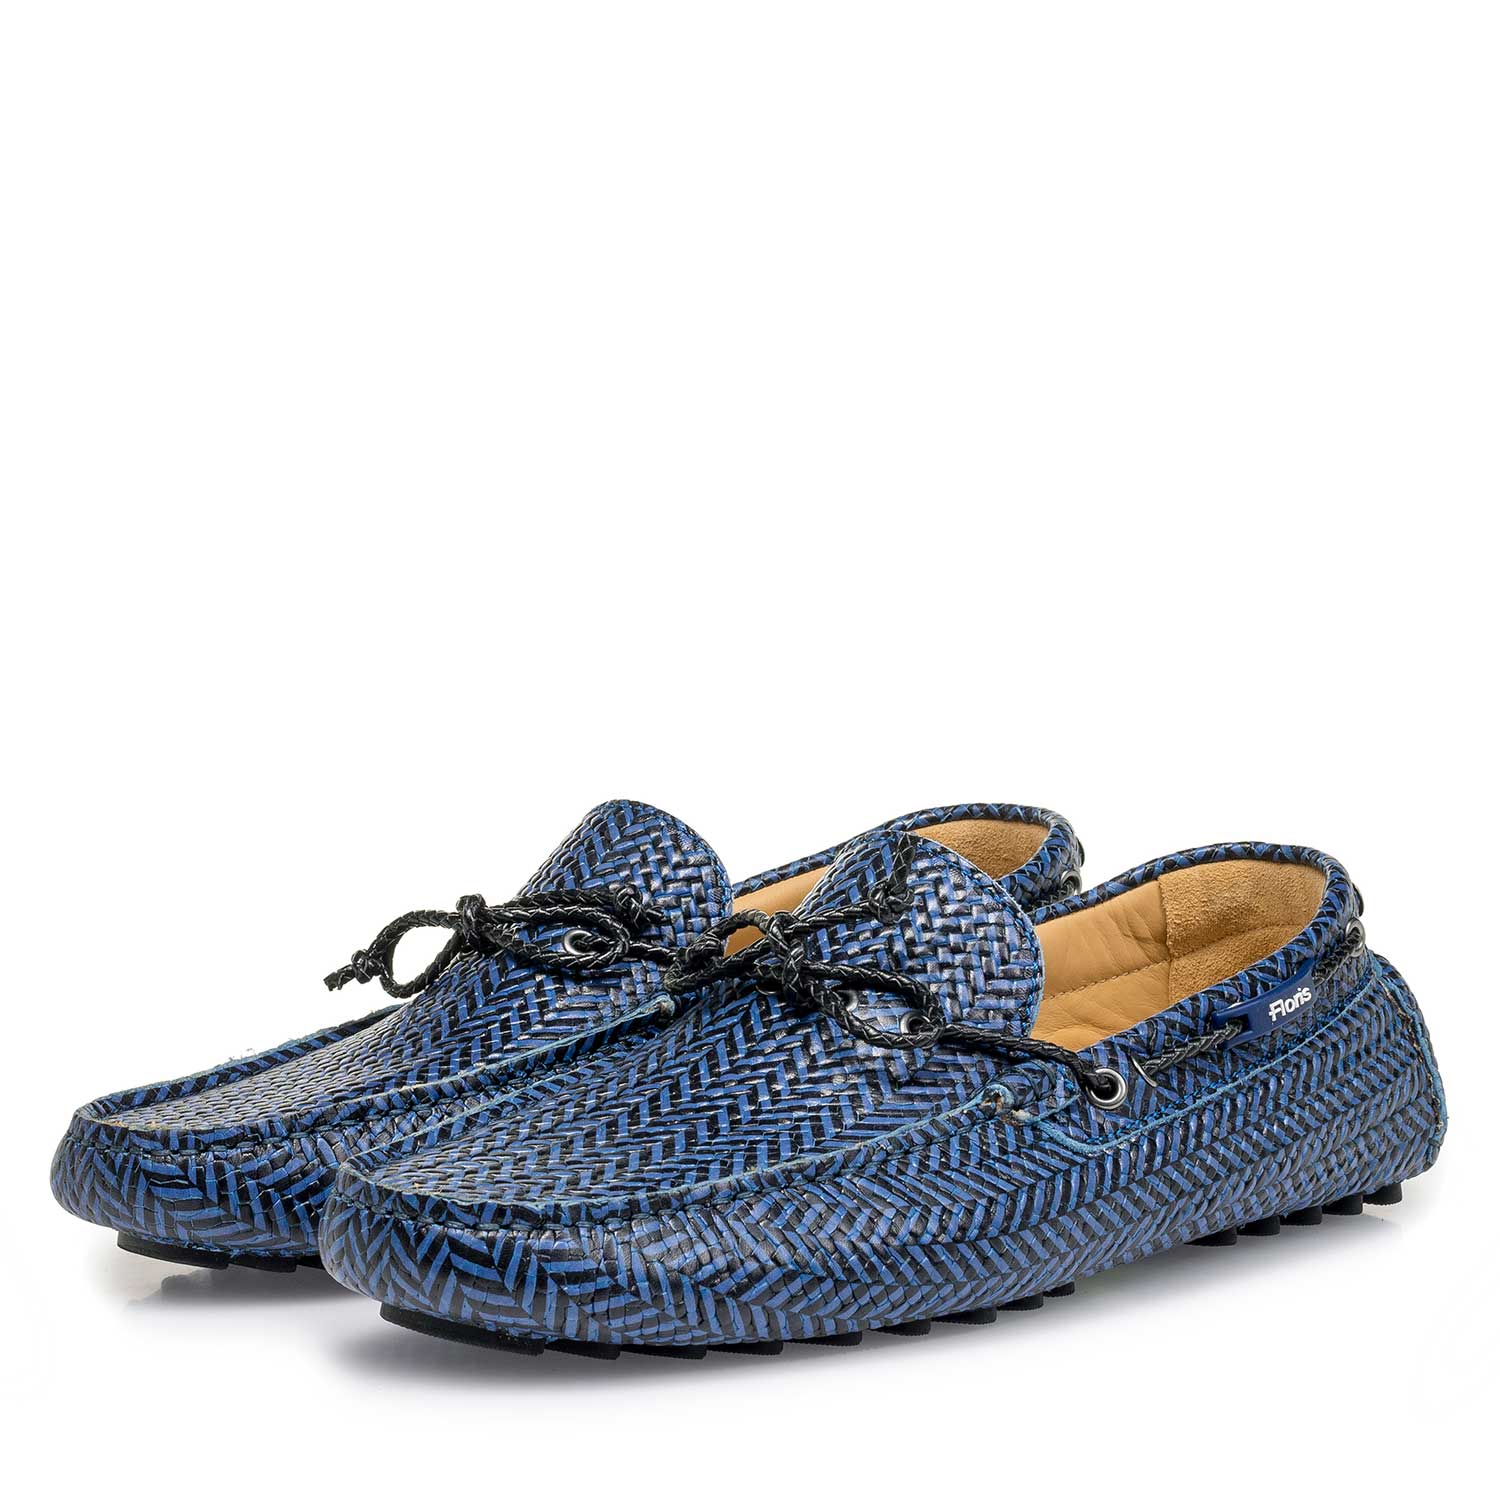 15214/06 - Blue-black printed calf leather moccasin